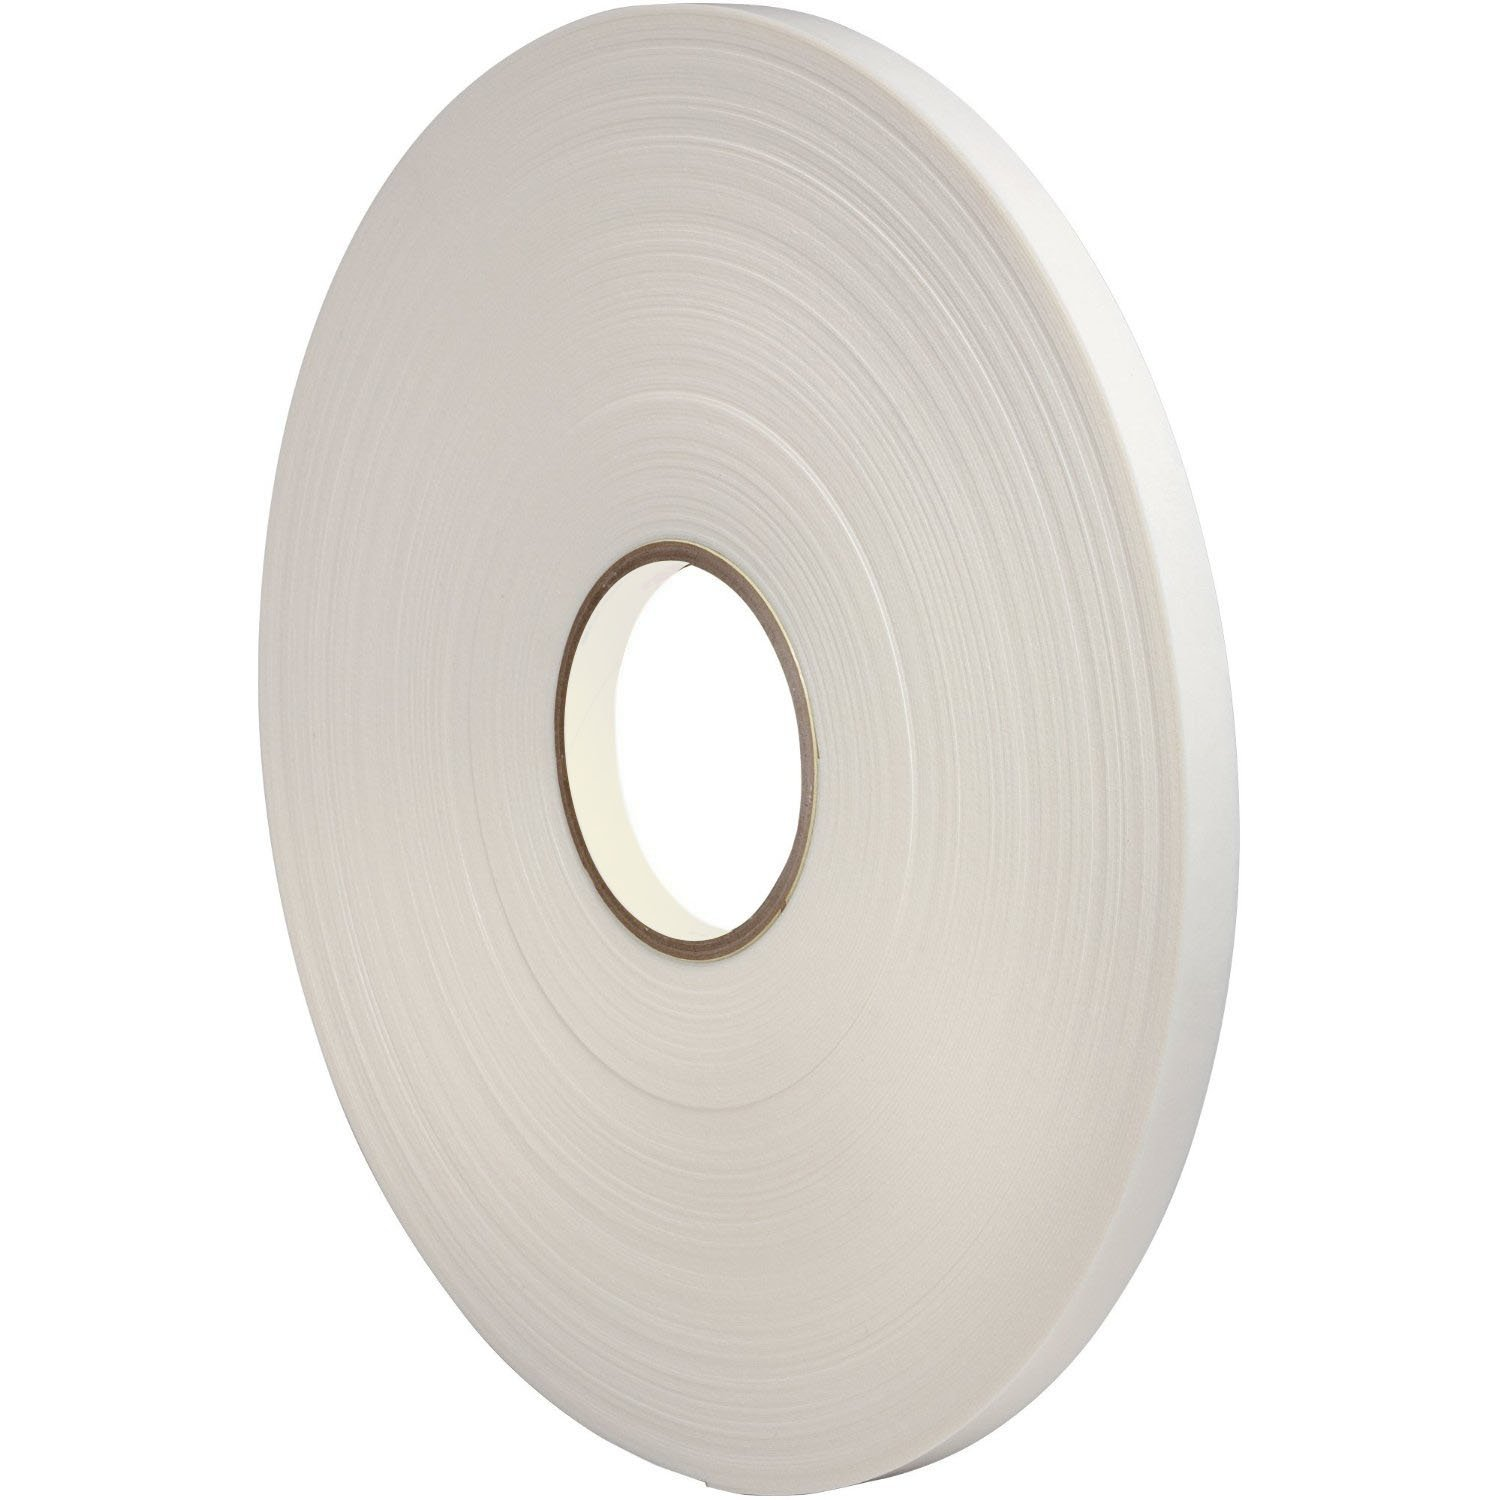 Craft Specialties Double Sided White Foam Tape - 1/2